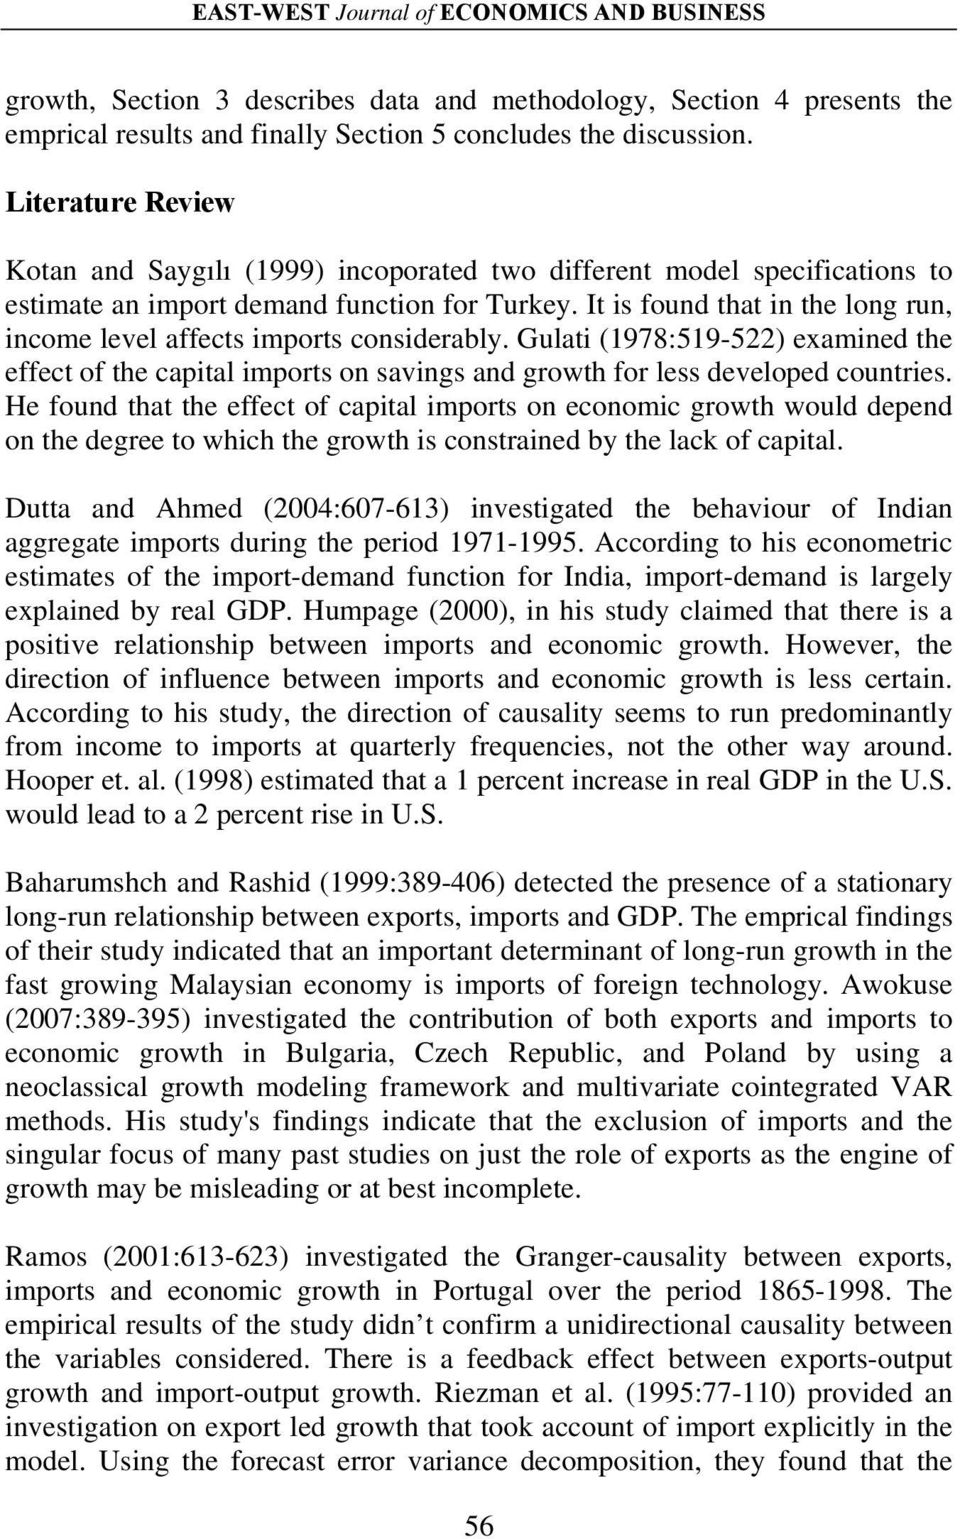 It is found that in the long run, income level affects imports considerably. Gulati (1978:519-522) examined the effect of the capital imports on savings and growth for less developed countries.